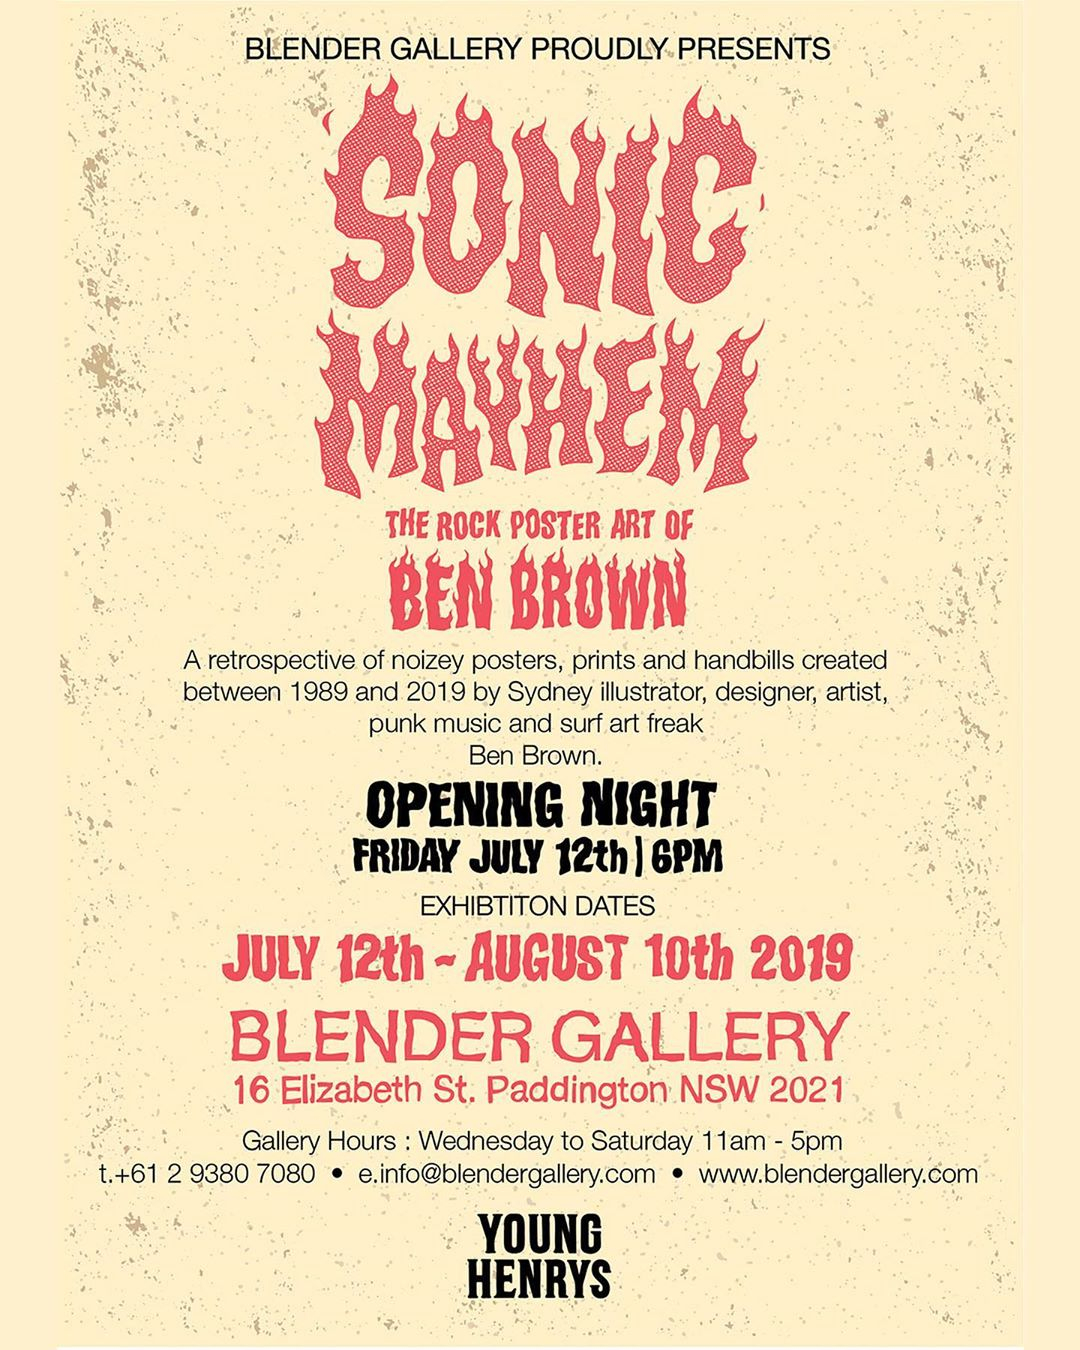 Sonic Mayhem - The Rock Poster Art of Ben Brown July 12th to